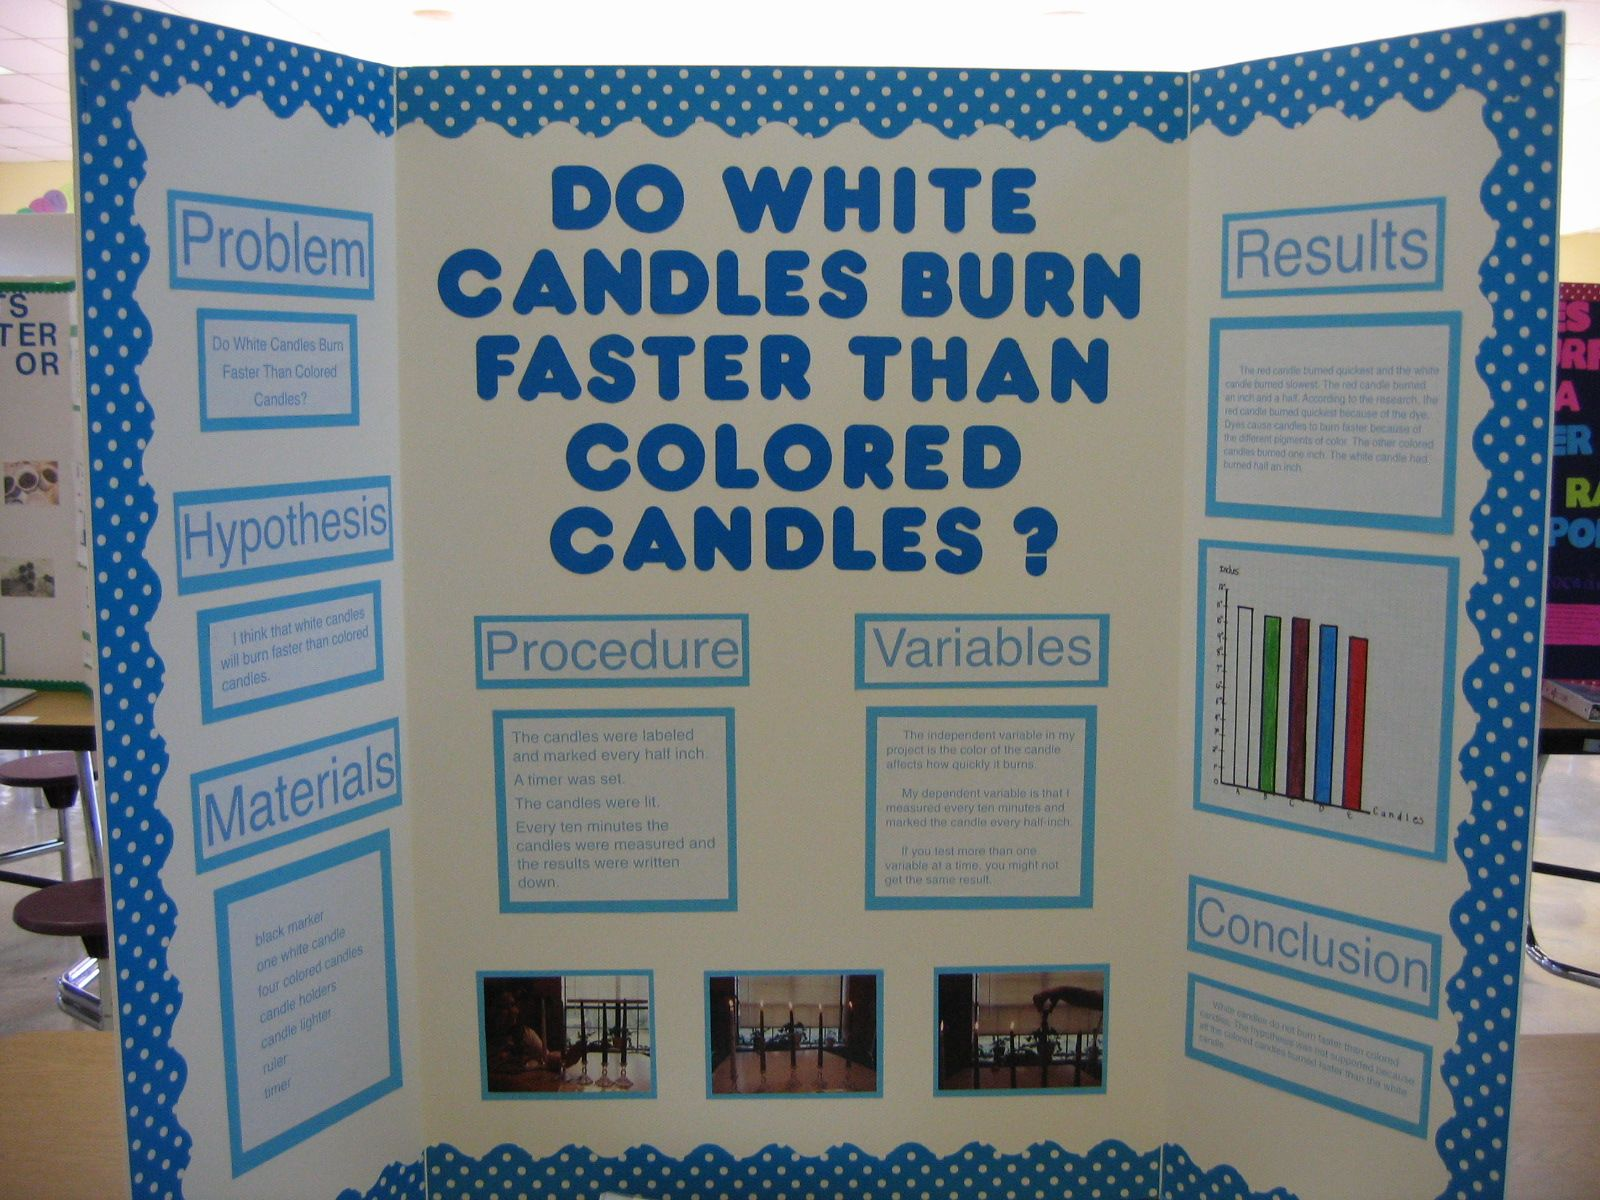 fun science fair projects for middle school 1,500 + science fair project ideas and experiments for middle school students in grades 6th-8th.